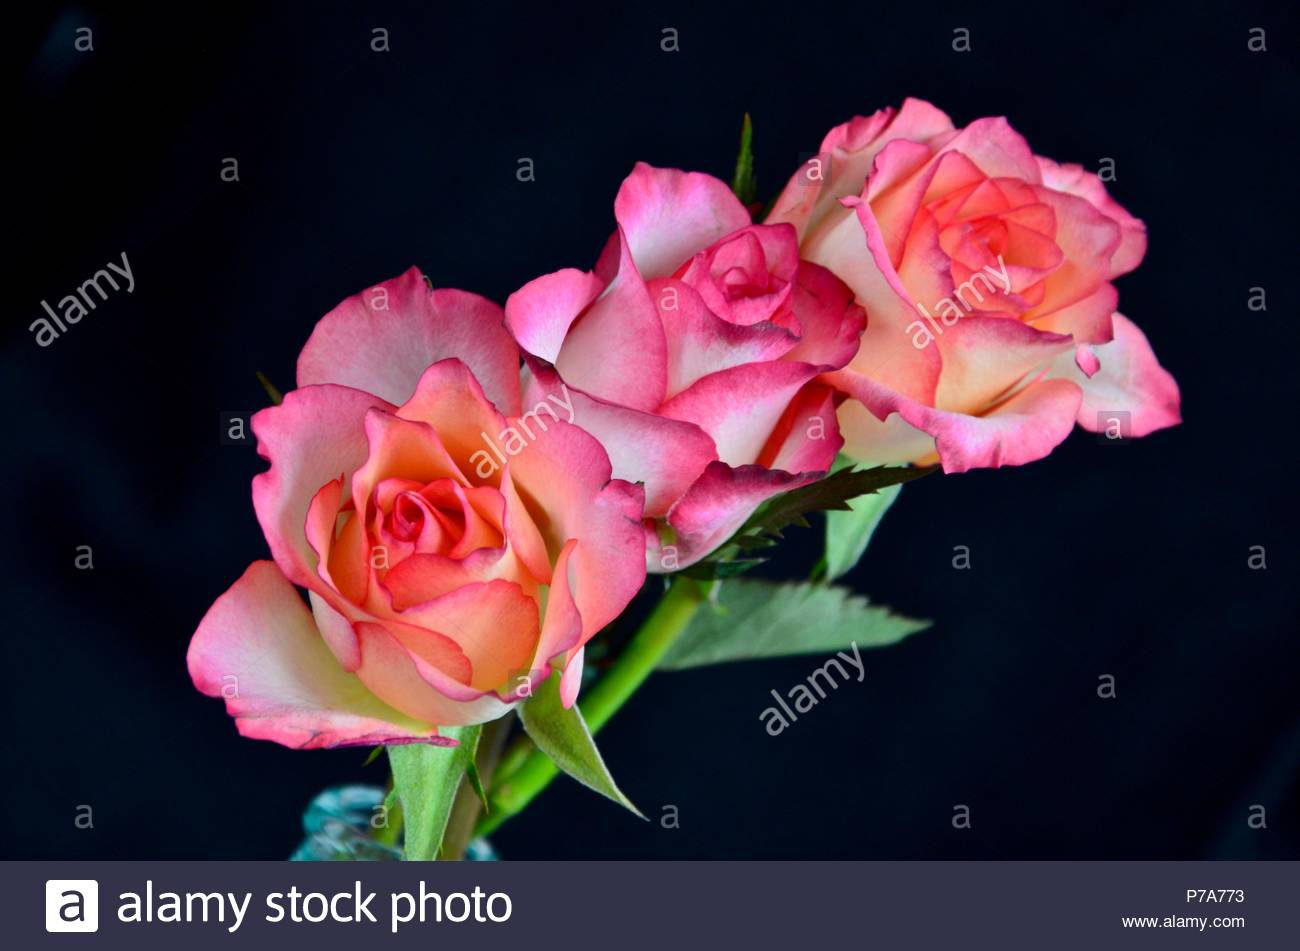 Three roses pink colored roses queen of flowers concept trio three roses pink colored roses queen of flowers concept trio bridal bouquet fragrance rose oil colorful beauty gift mightylinksfo